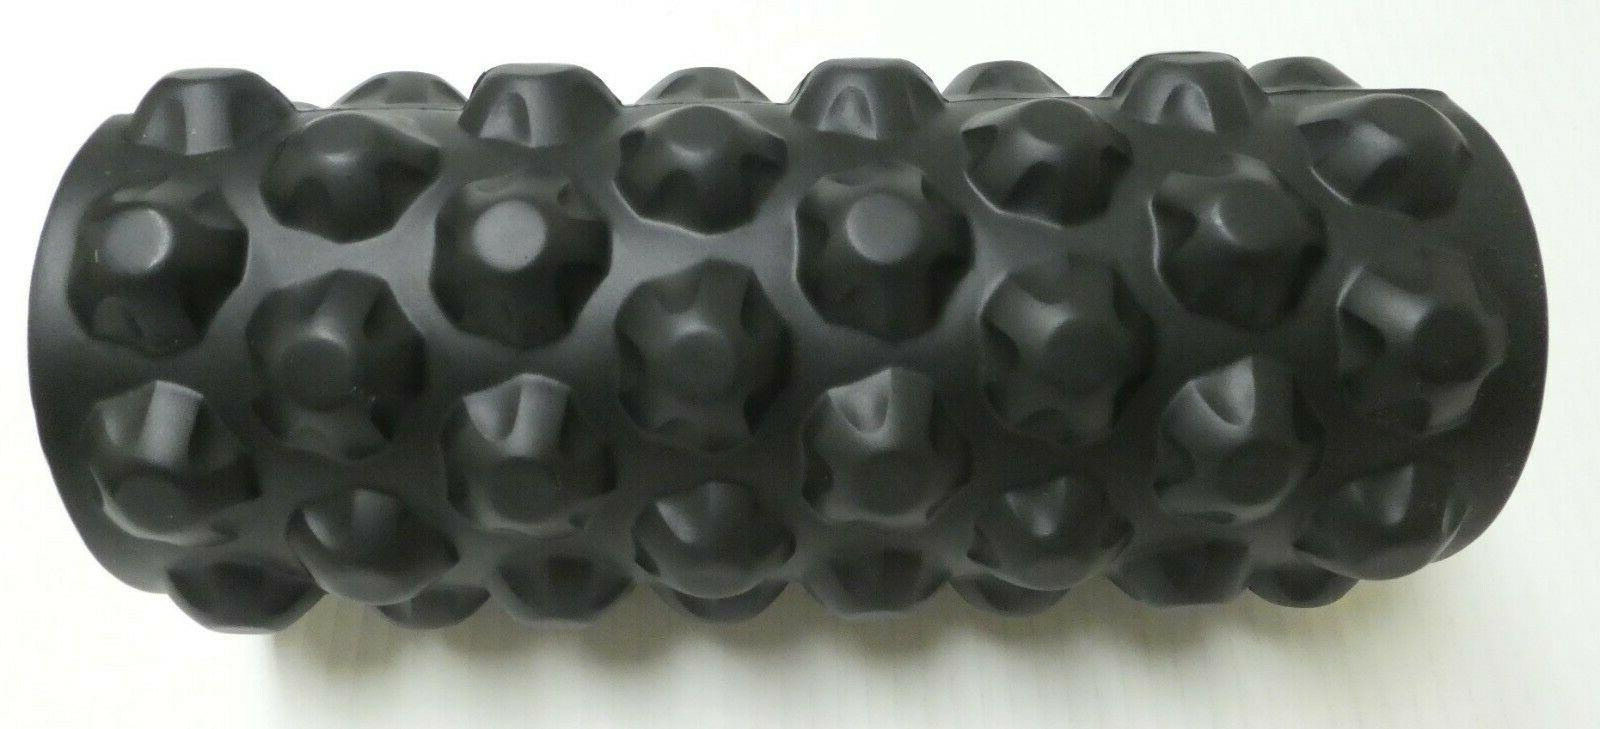 foam roller for muscle massage and deep